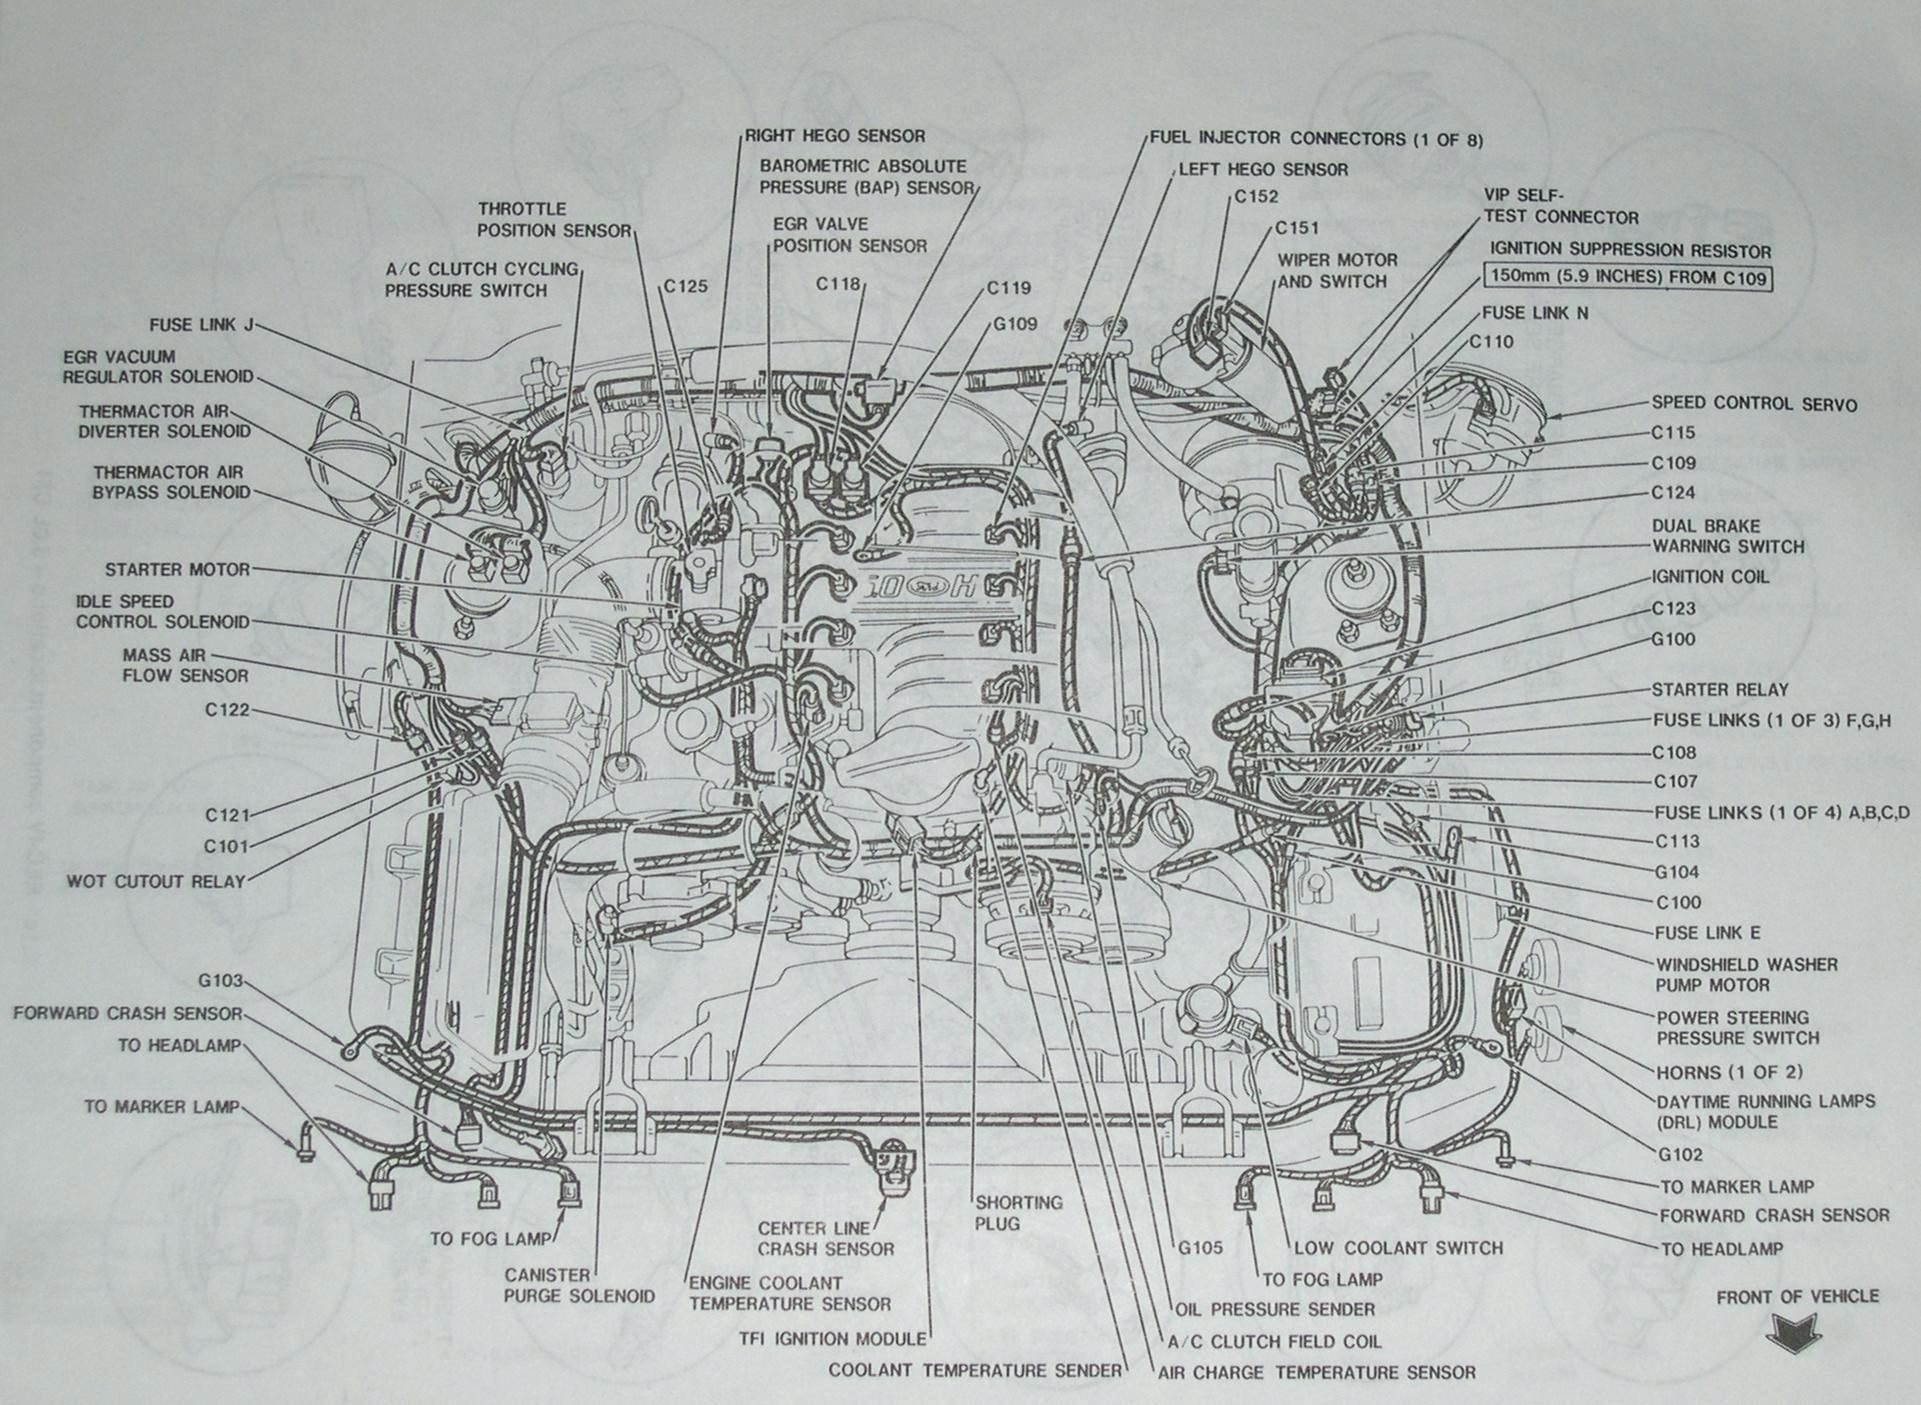 hight resolution of 1997 mustang engine wiring diagram wiring diagram preview 1997 mustang engine diagram